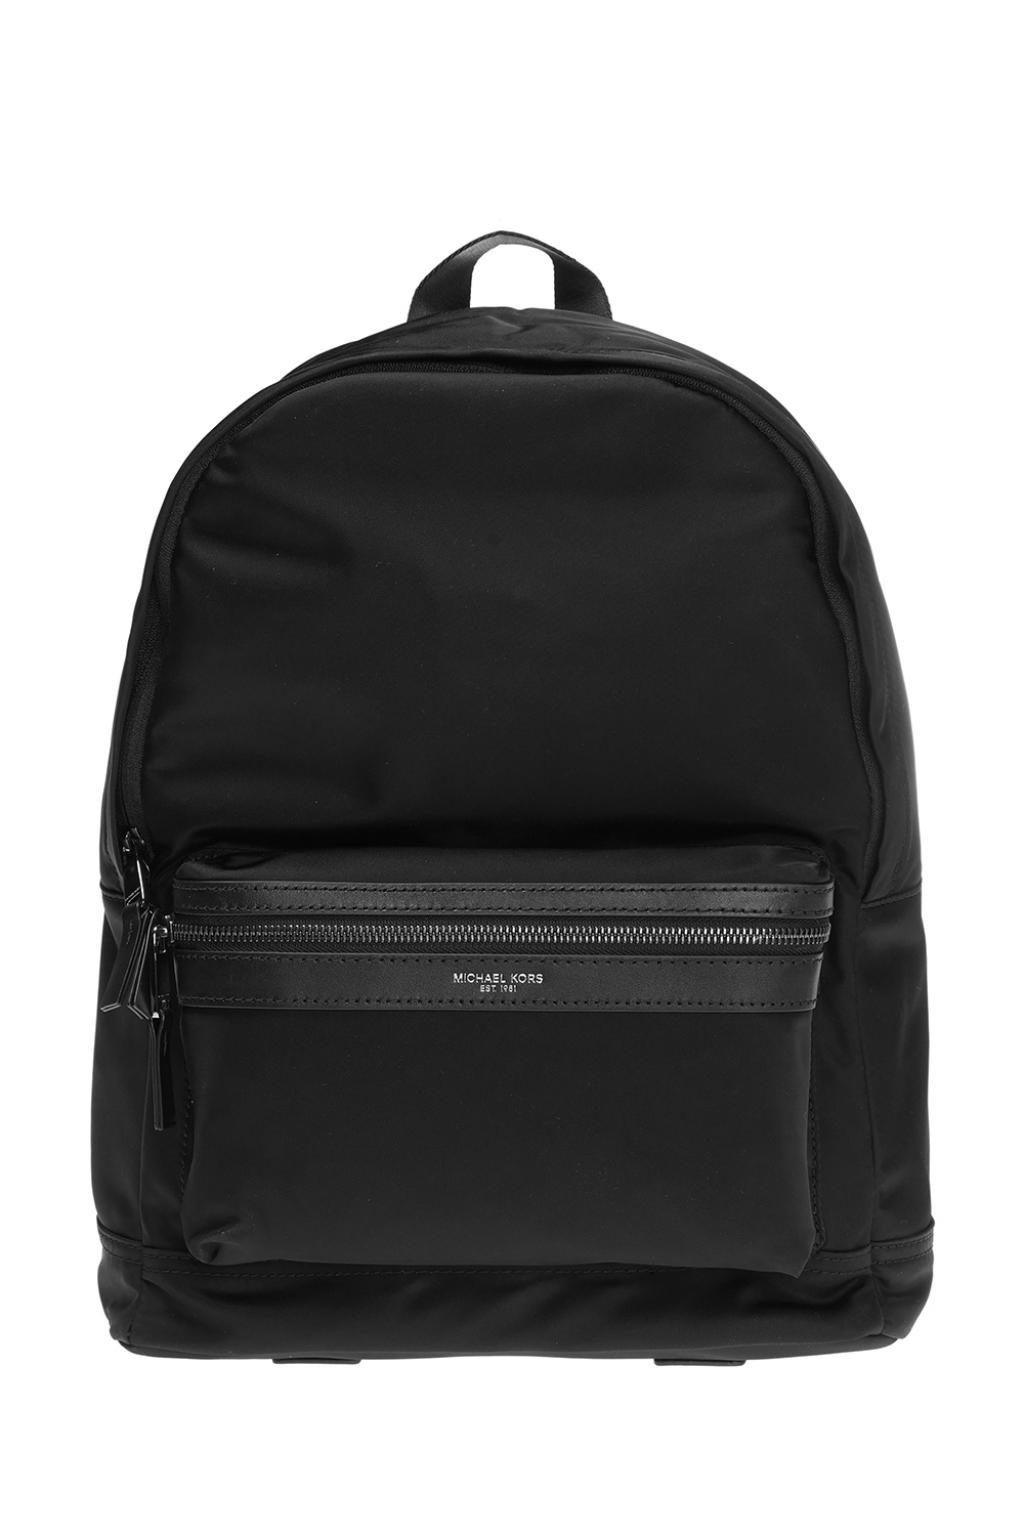 b825cc006de9 Lyst - Michael Kors 'kent' Backpack in Black for Men